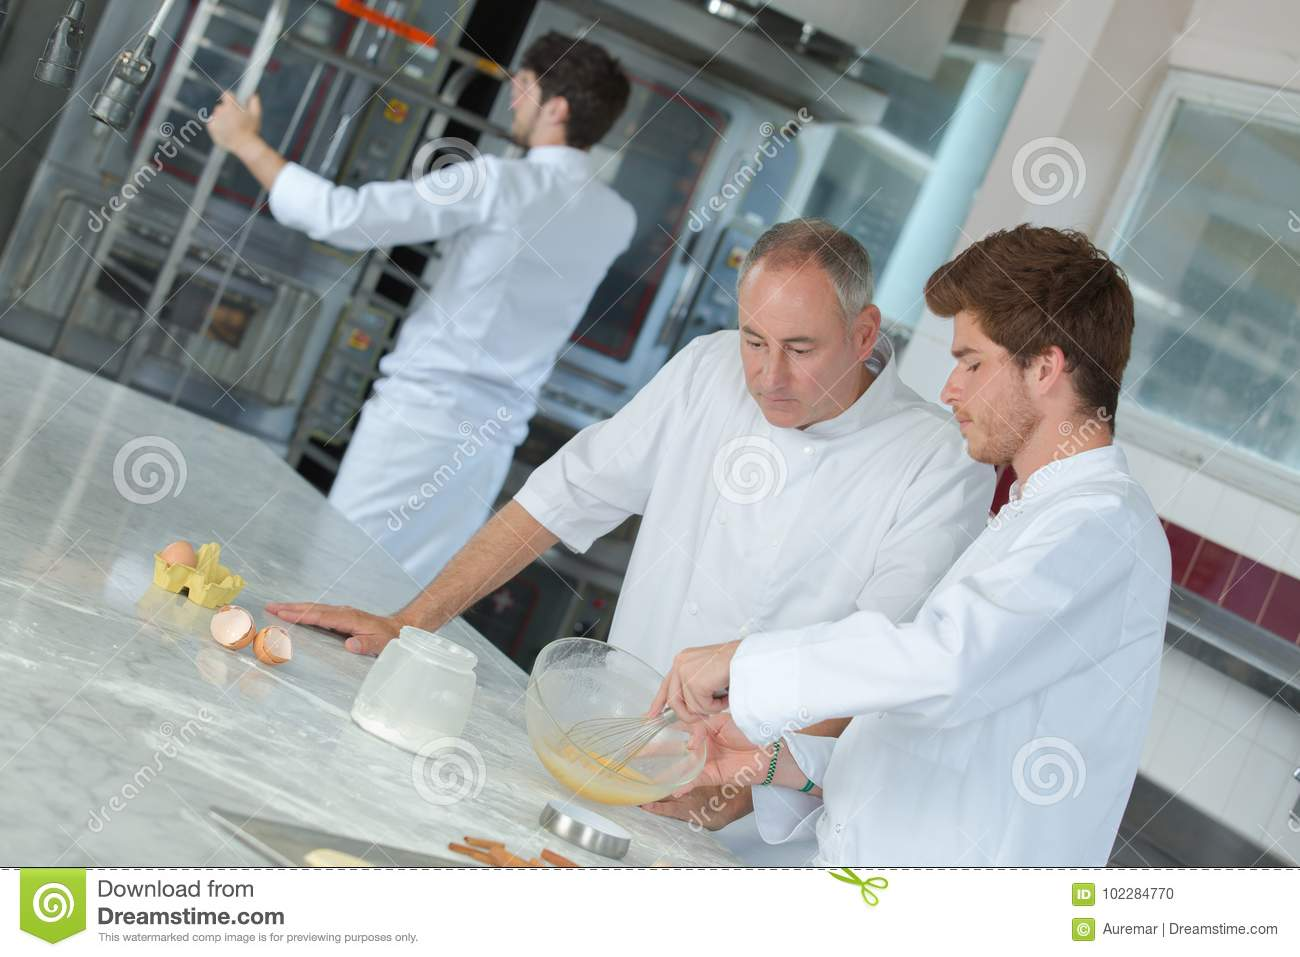 Head-chef rating plate one apprentices in kitchen